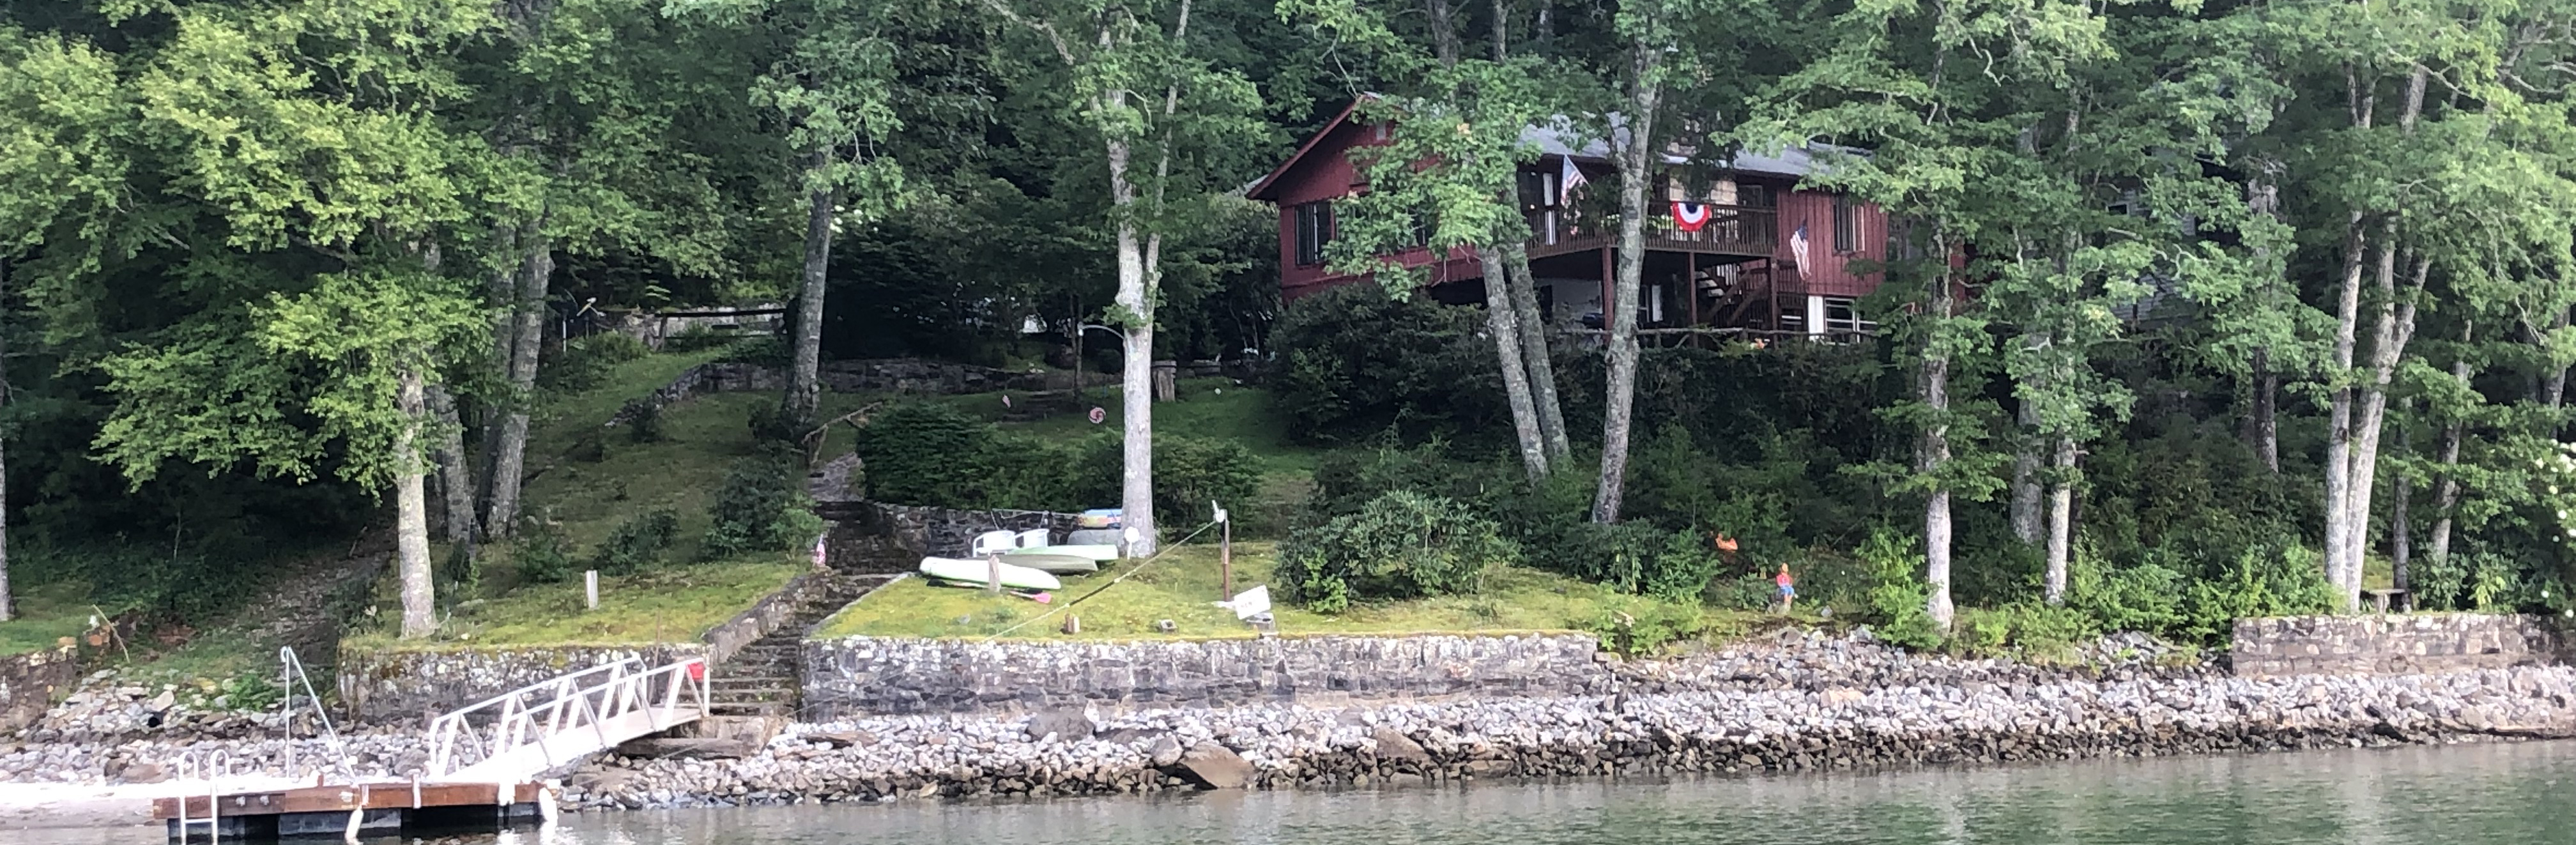 Photo of Red Bear Cabin on Lake Glenville